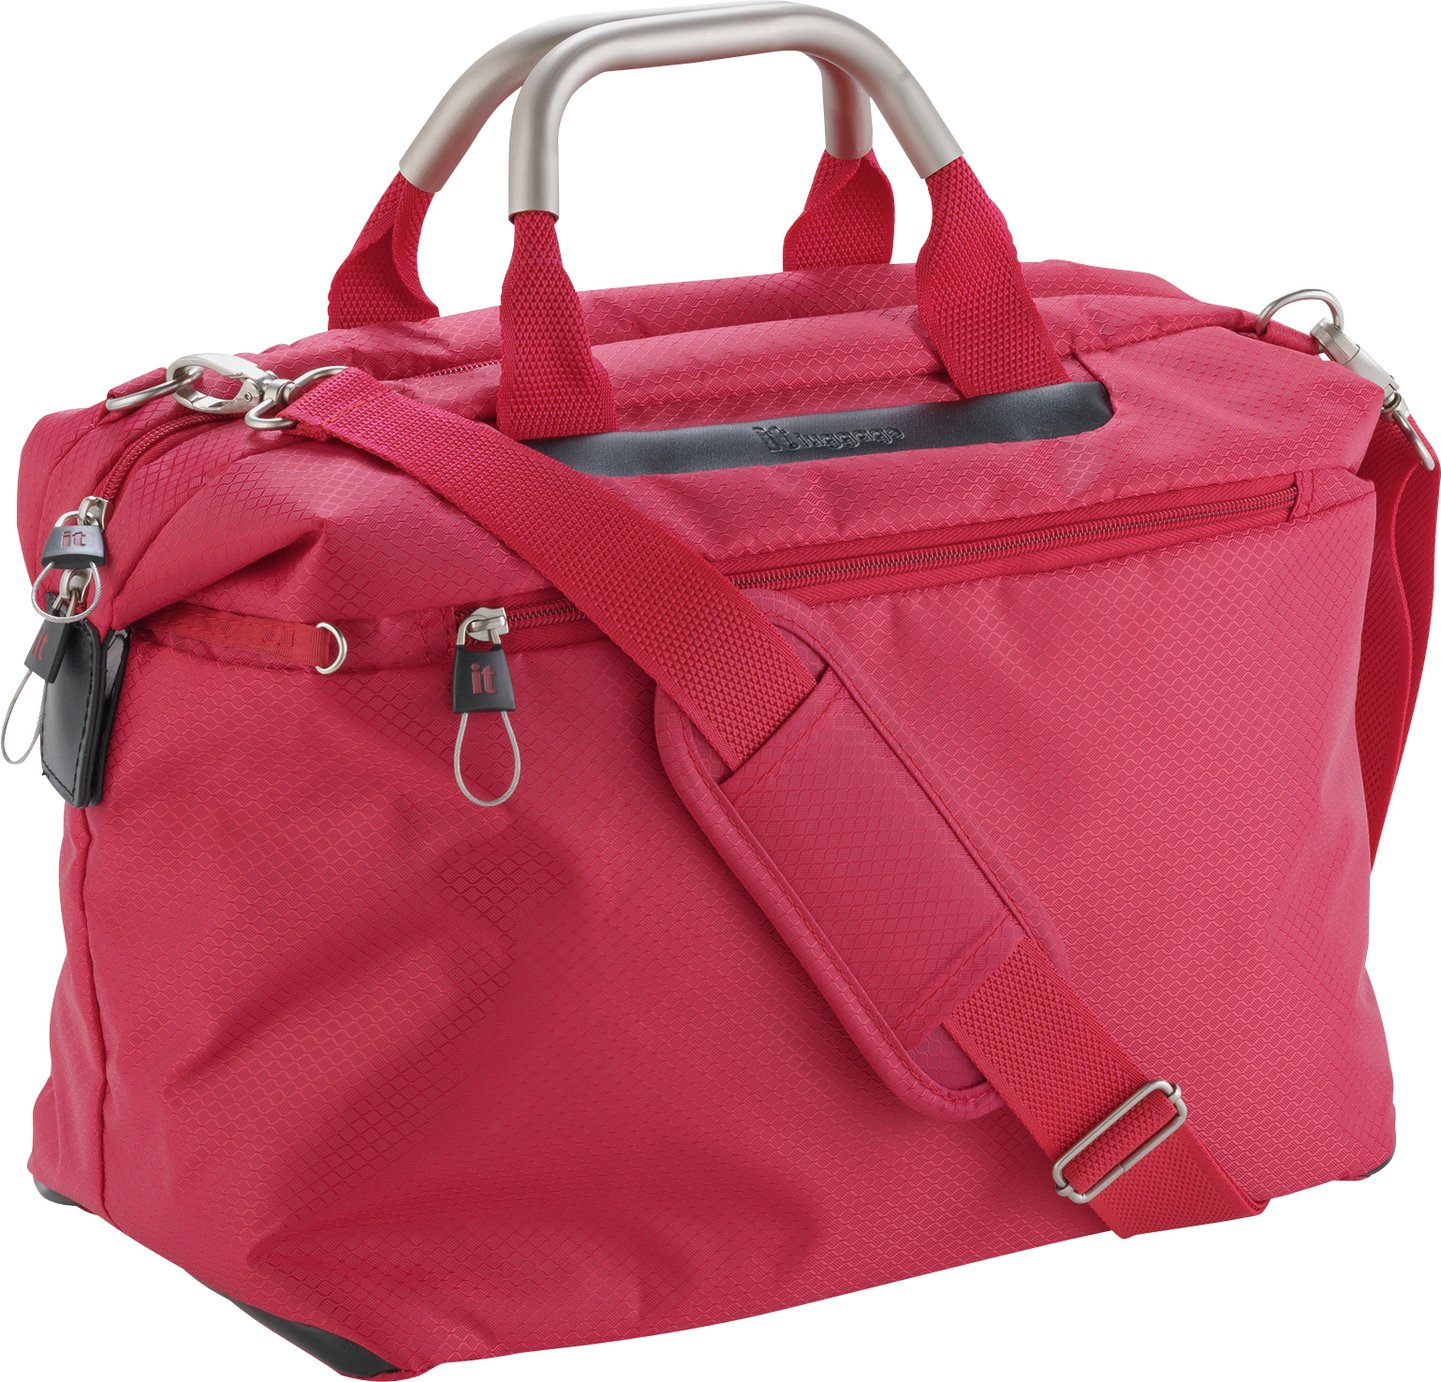 IT World's Lightest Small Cabin Holdall - Red lowest price